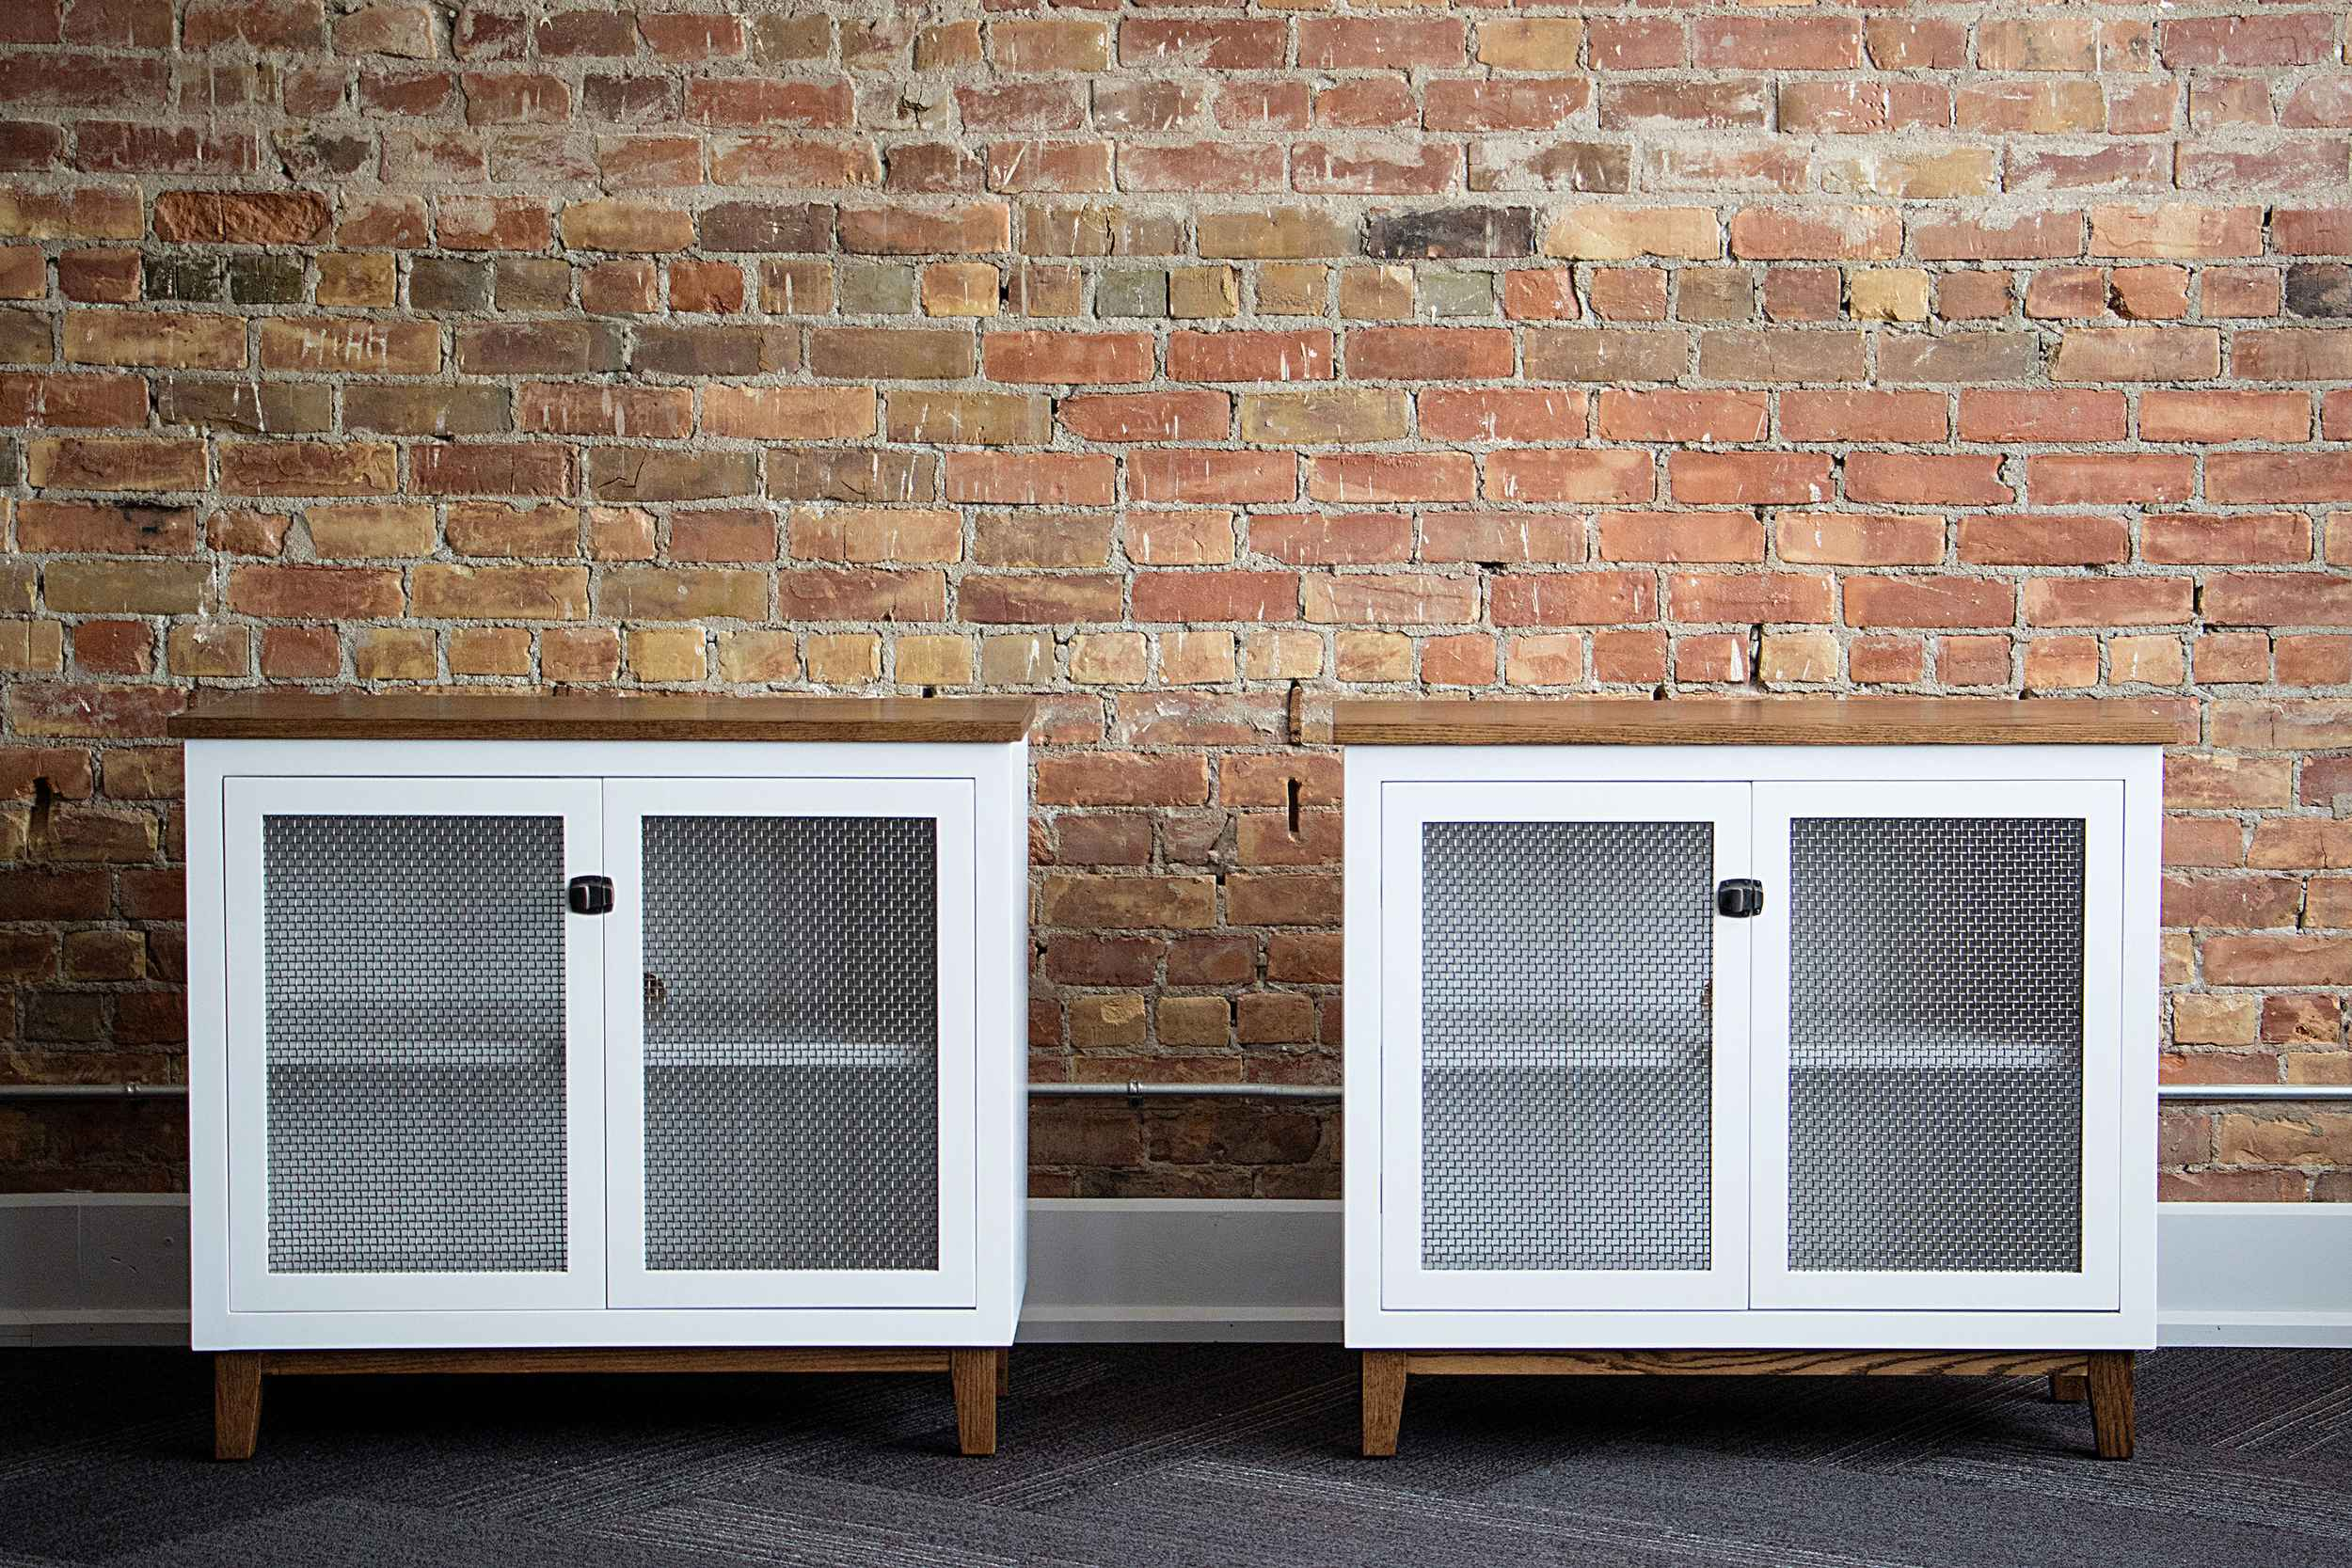 Custom painted speaker cabinets featuring solid oak base and top and steel mesh door panels.